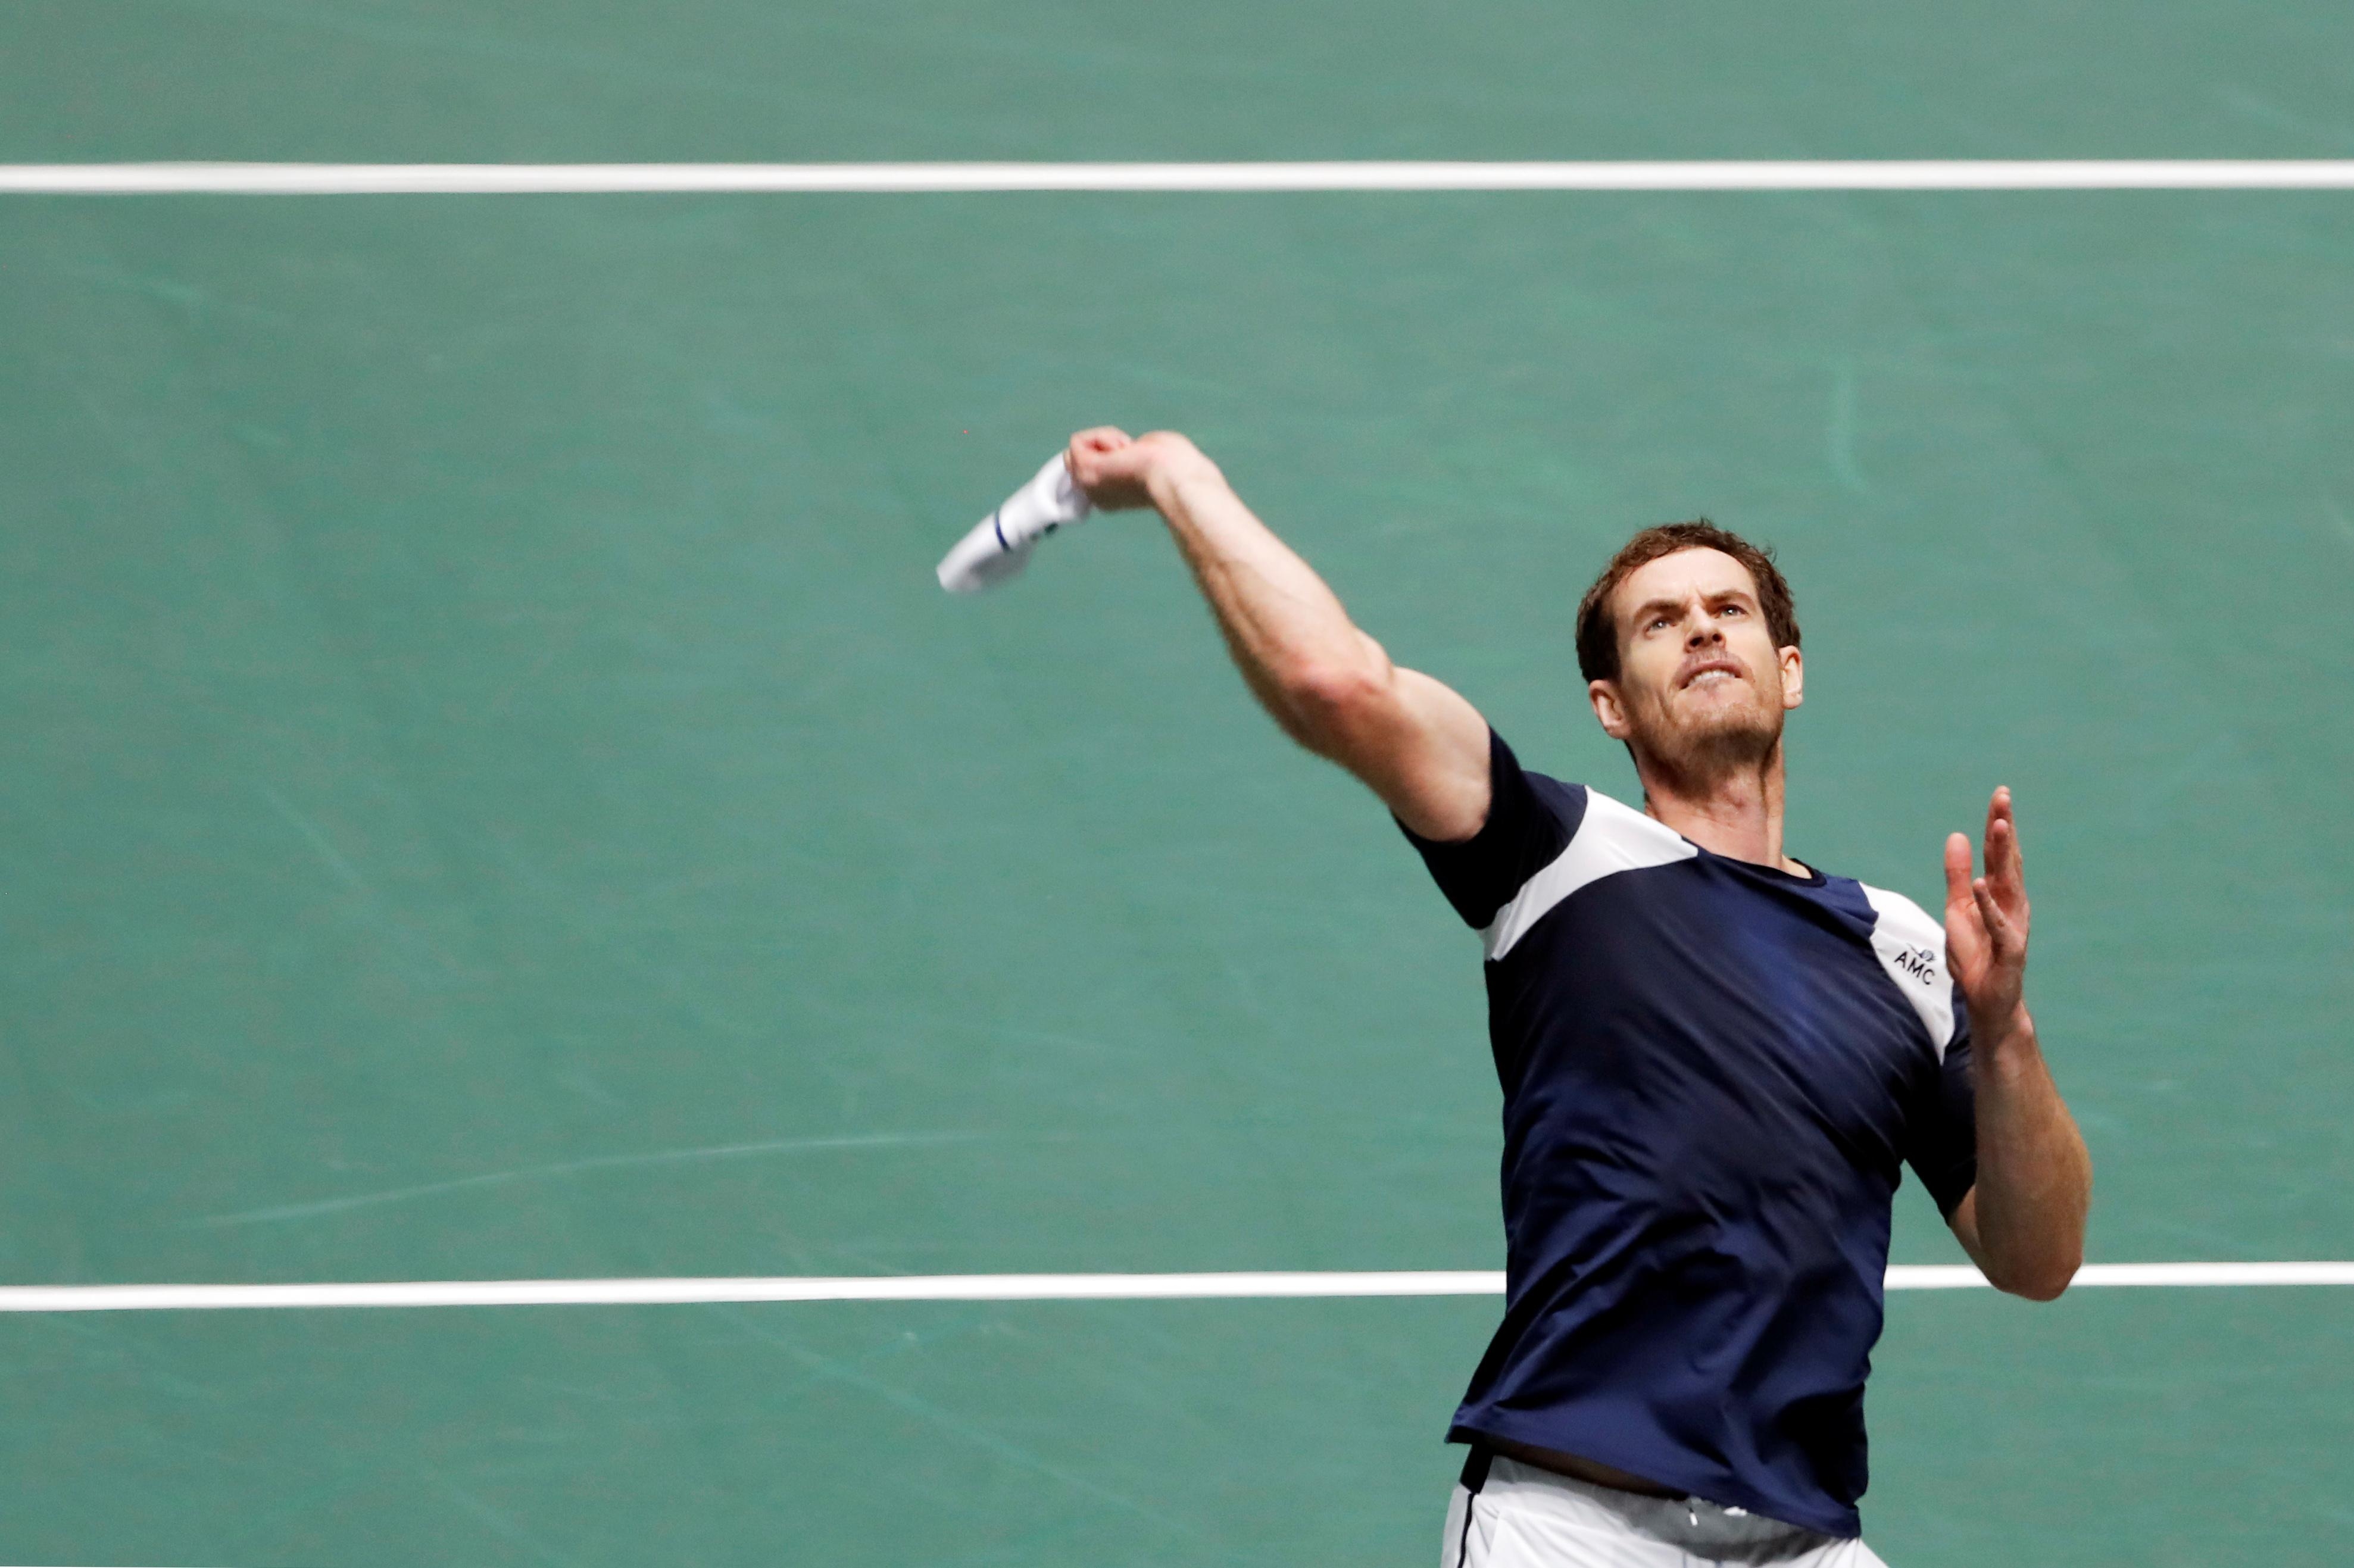 Murray admits being out of shape after Davis Cup scare